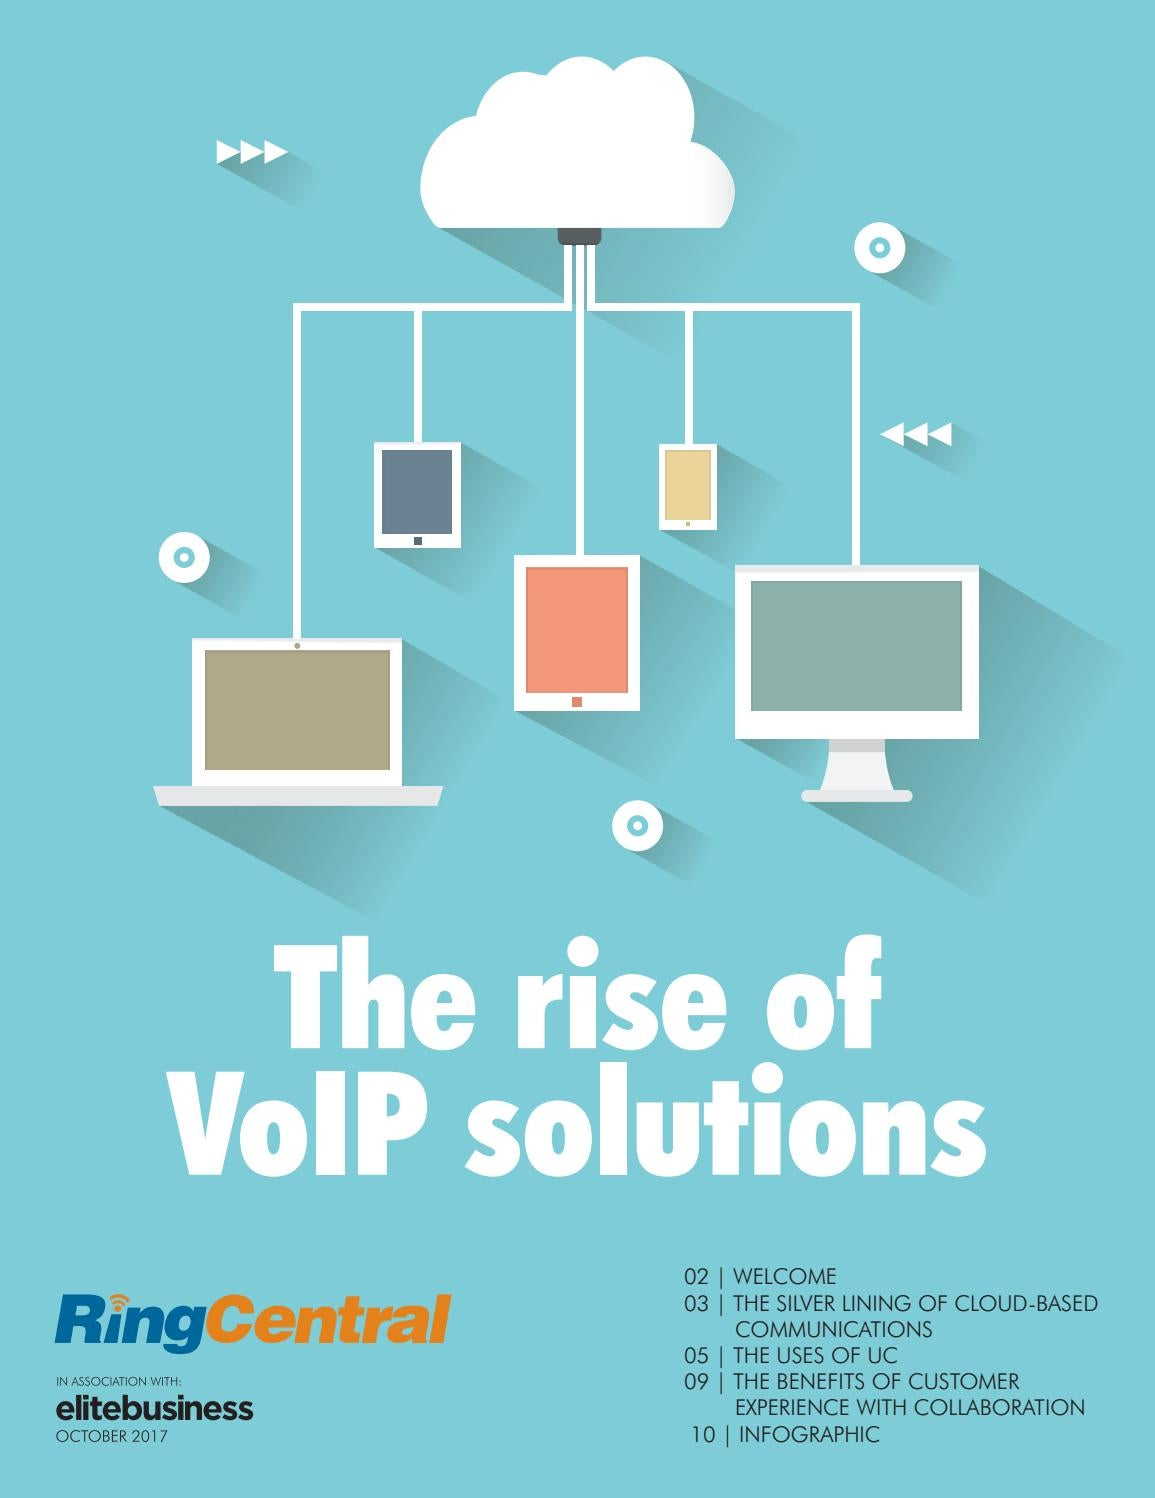 The rise of VoIP solutions – sponsored by RingCentral by